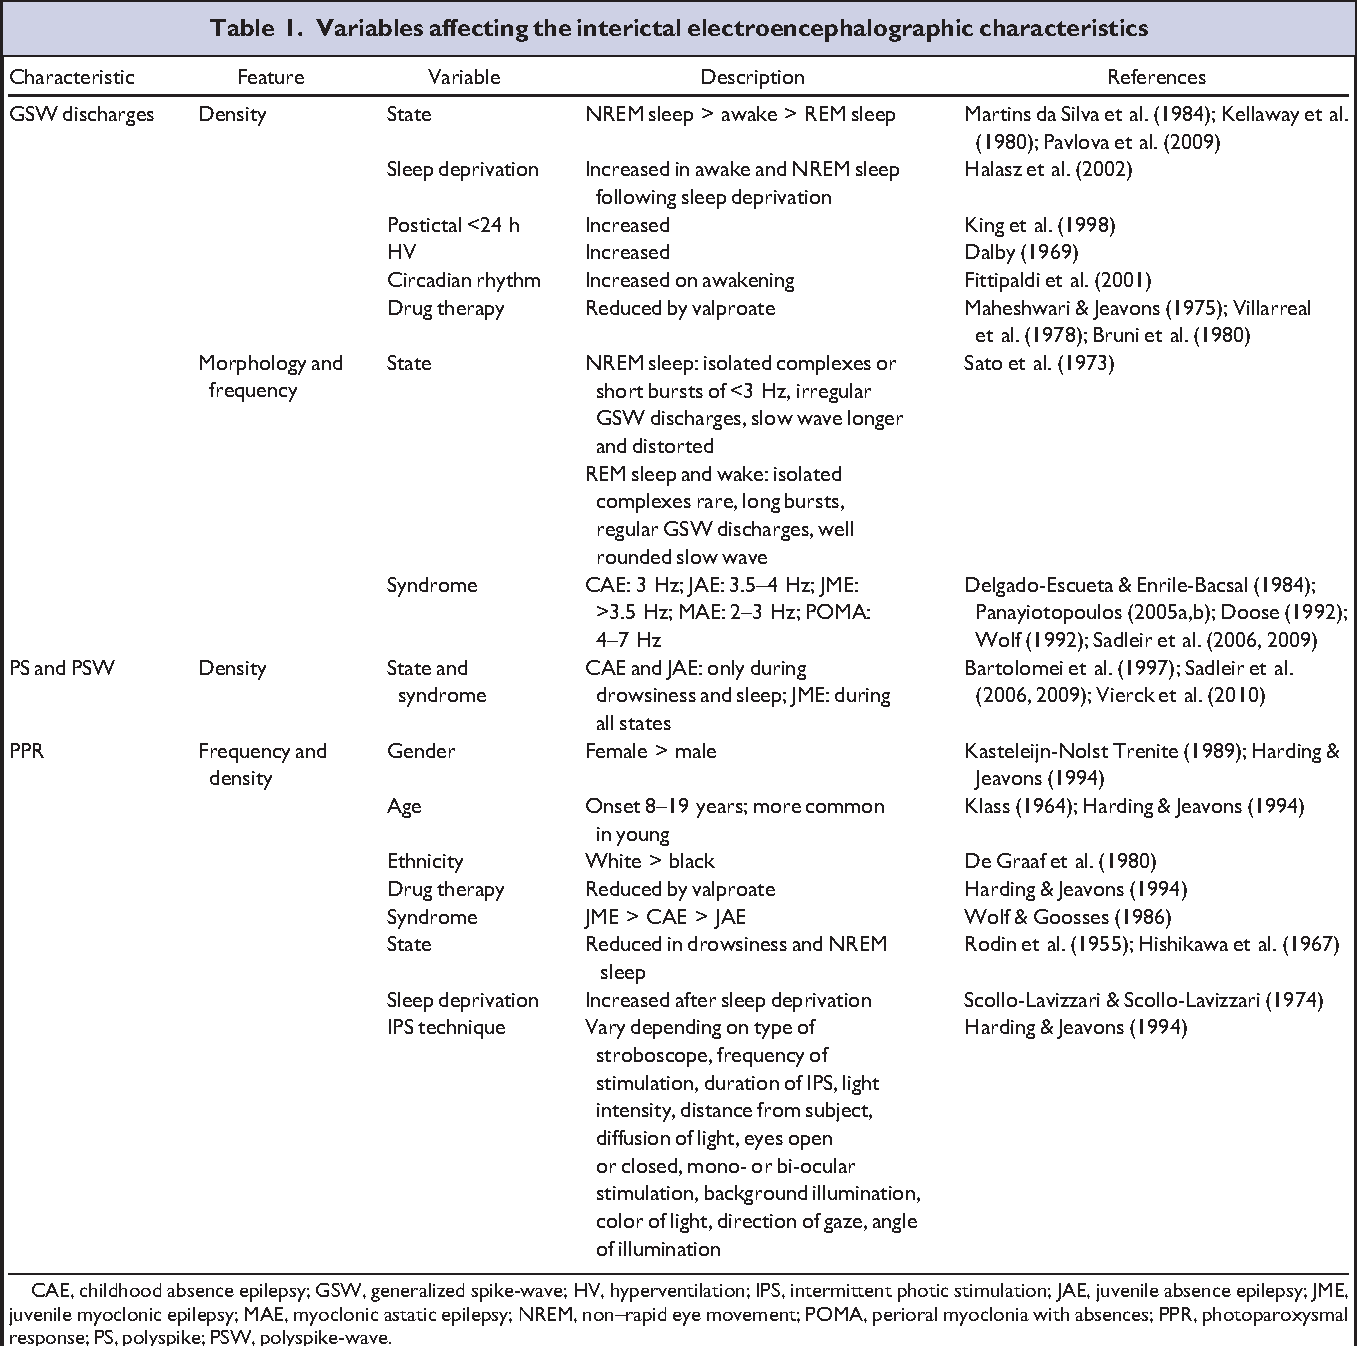 Table 1. Variables affecting the interictal electroencephalographic characteristics